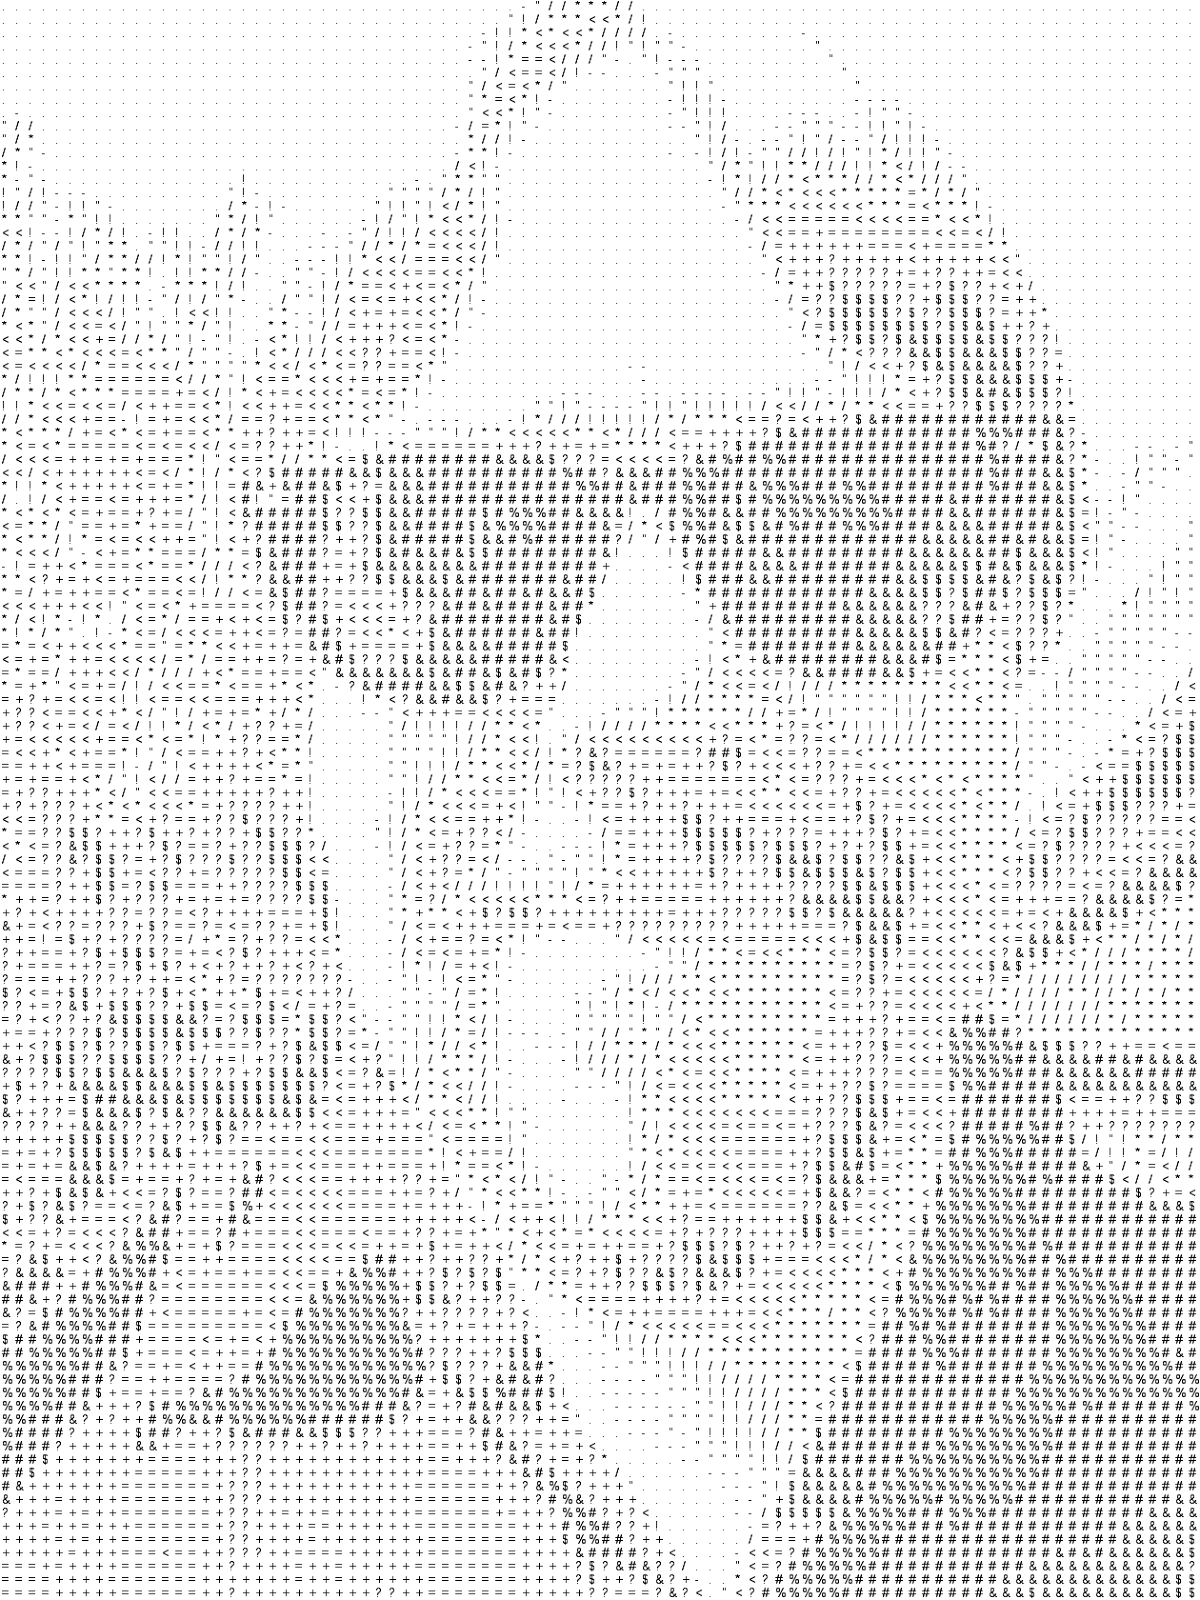 One Line Ascii Art Party : All this is that remembering mainframe ascii printouts